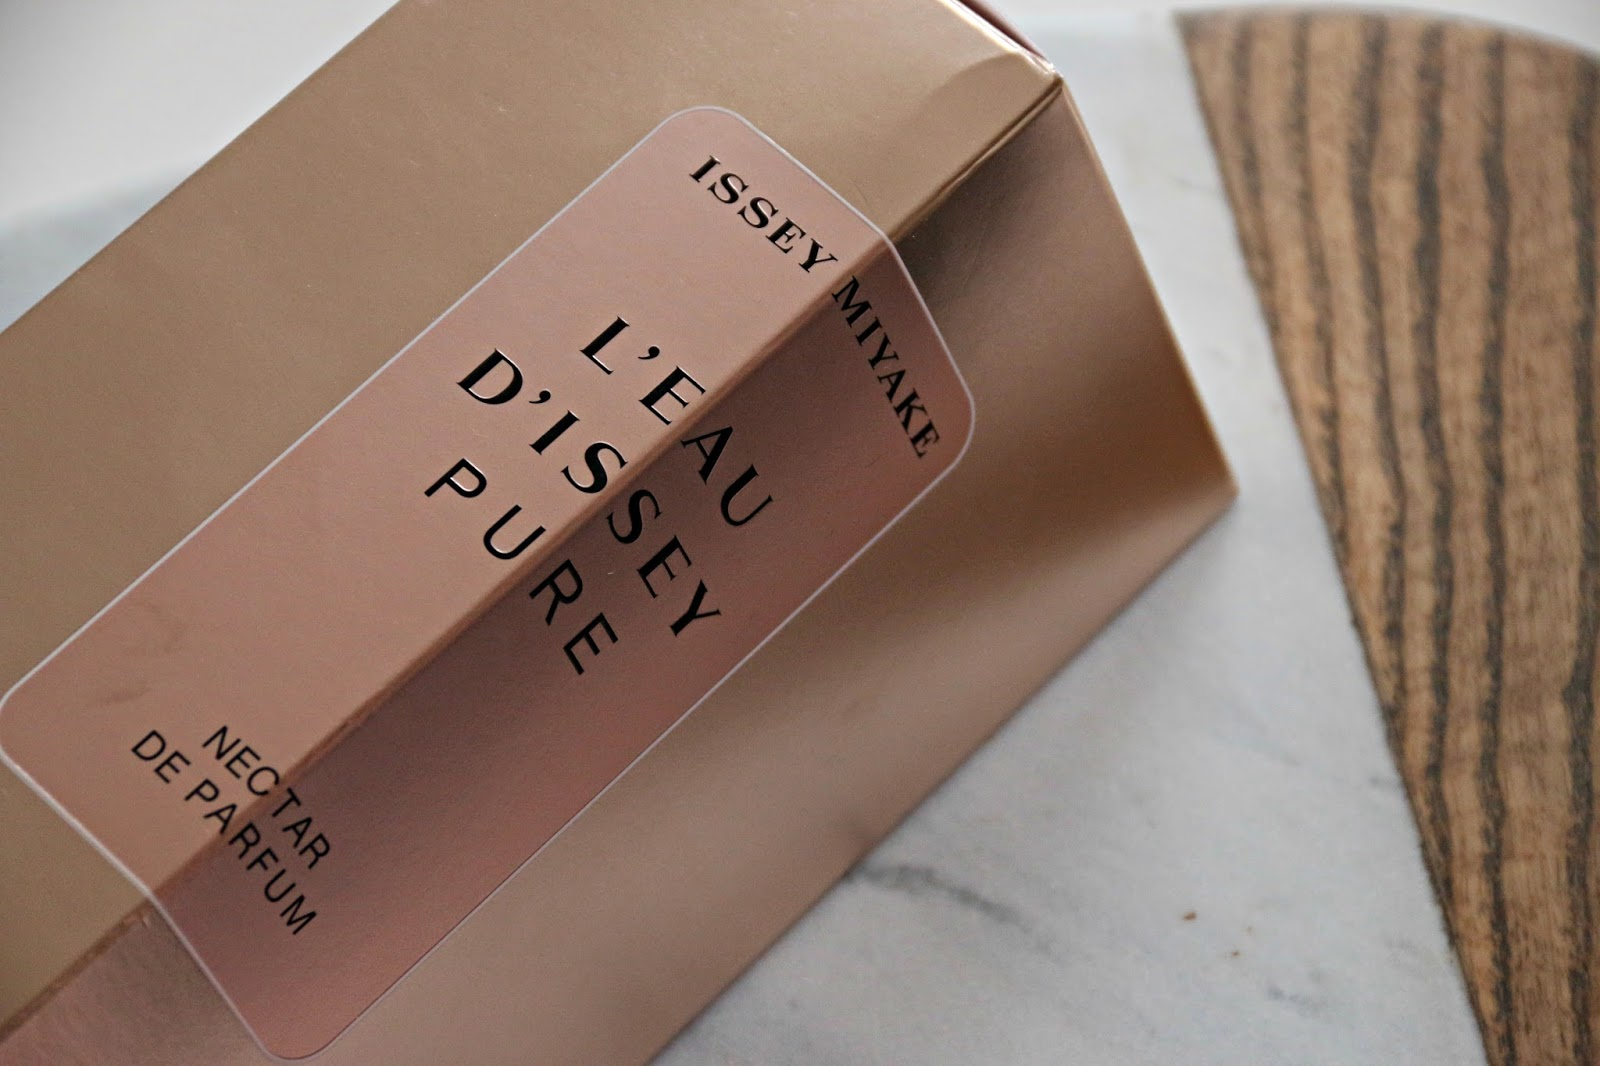 Issey Miyake L'Eau D'Issey Pure Nectar EDP Fragrance Review